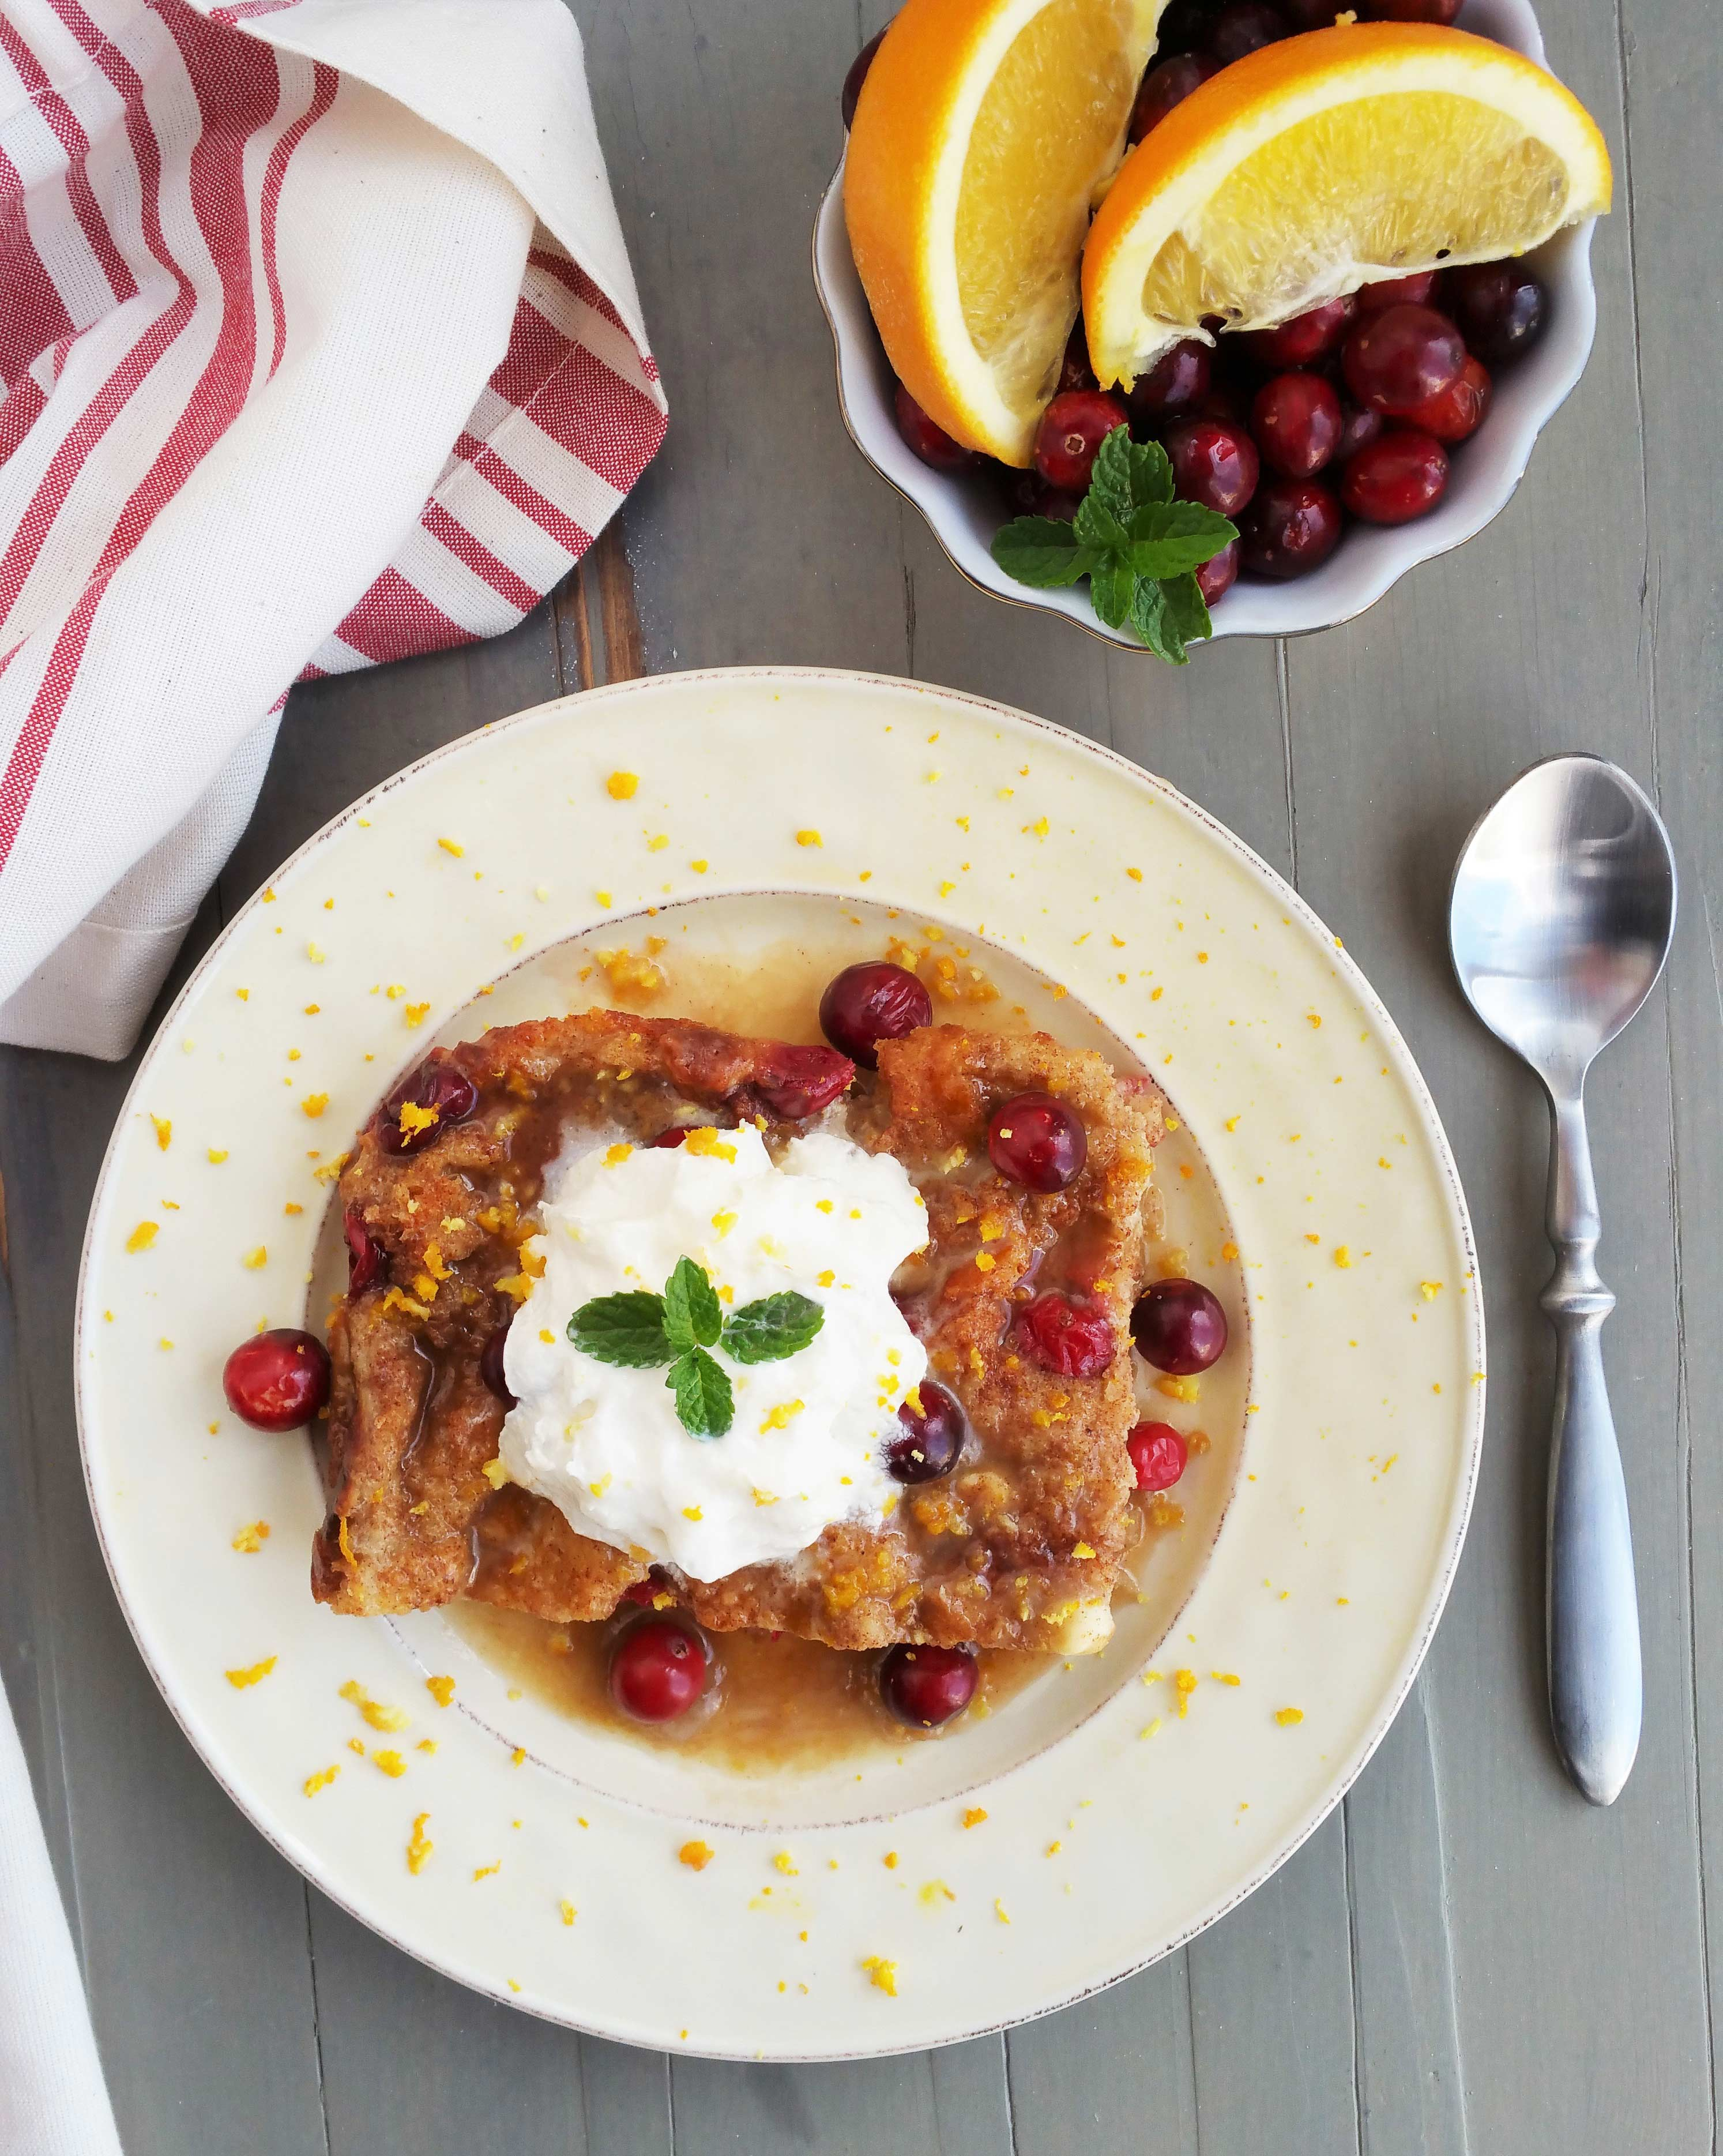 Cranberry Bread Pudding with Orange Bourbon Sauce